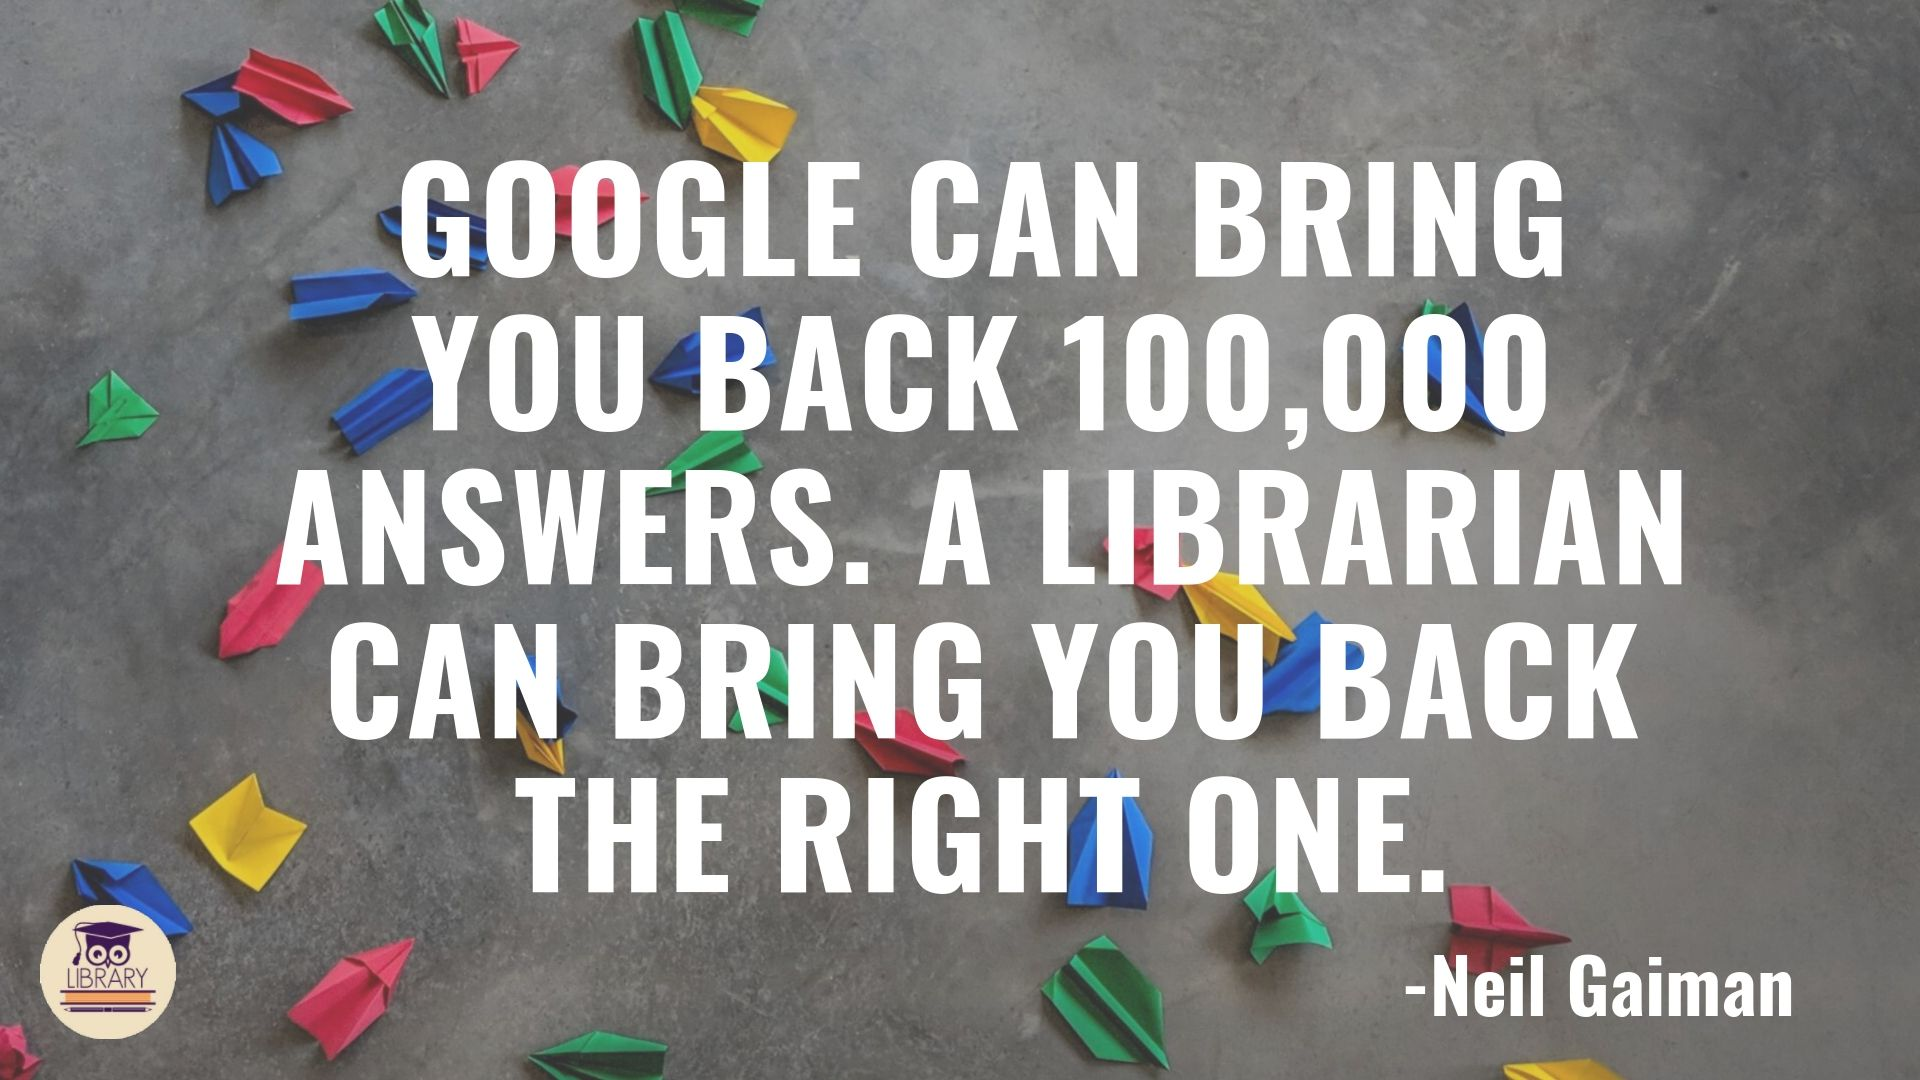 Ask a Librarian! We're here to help!